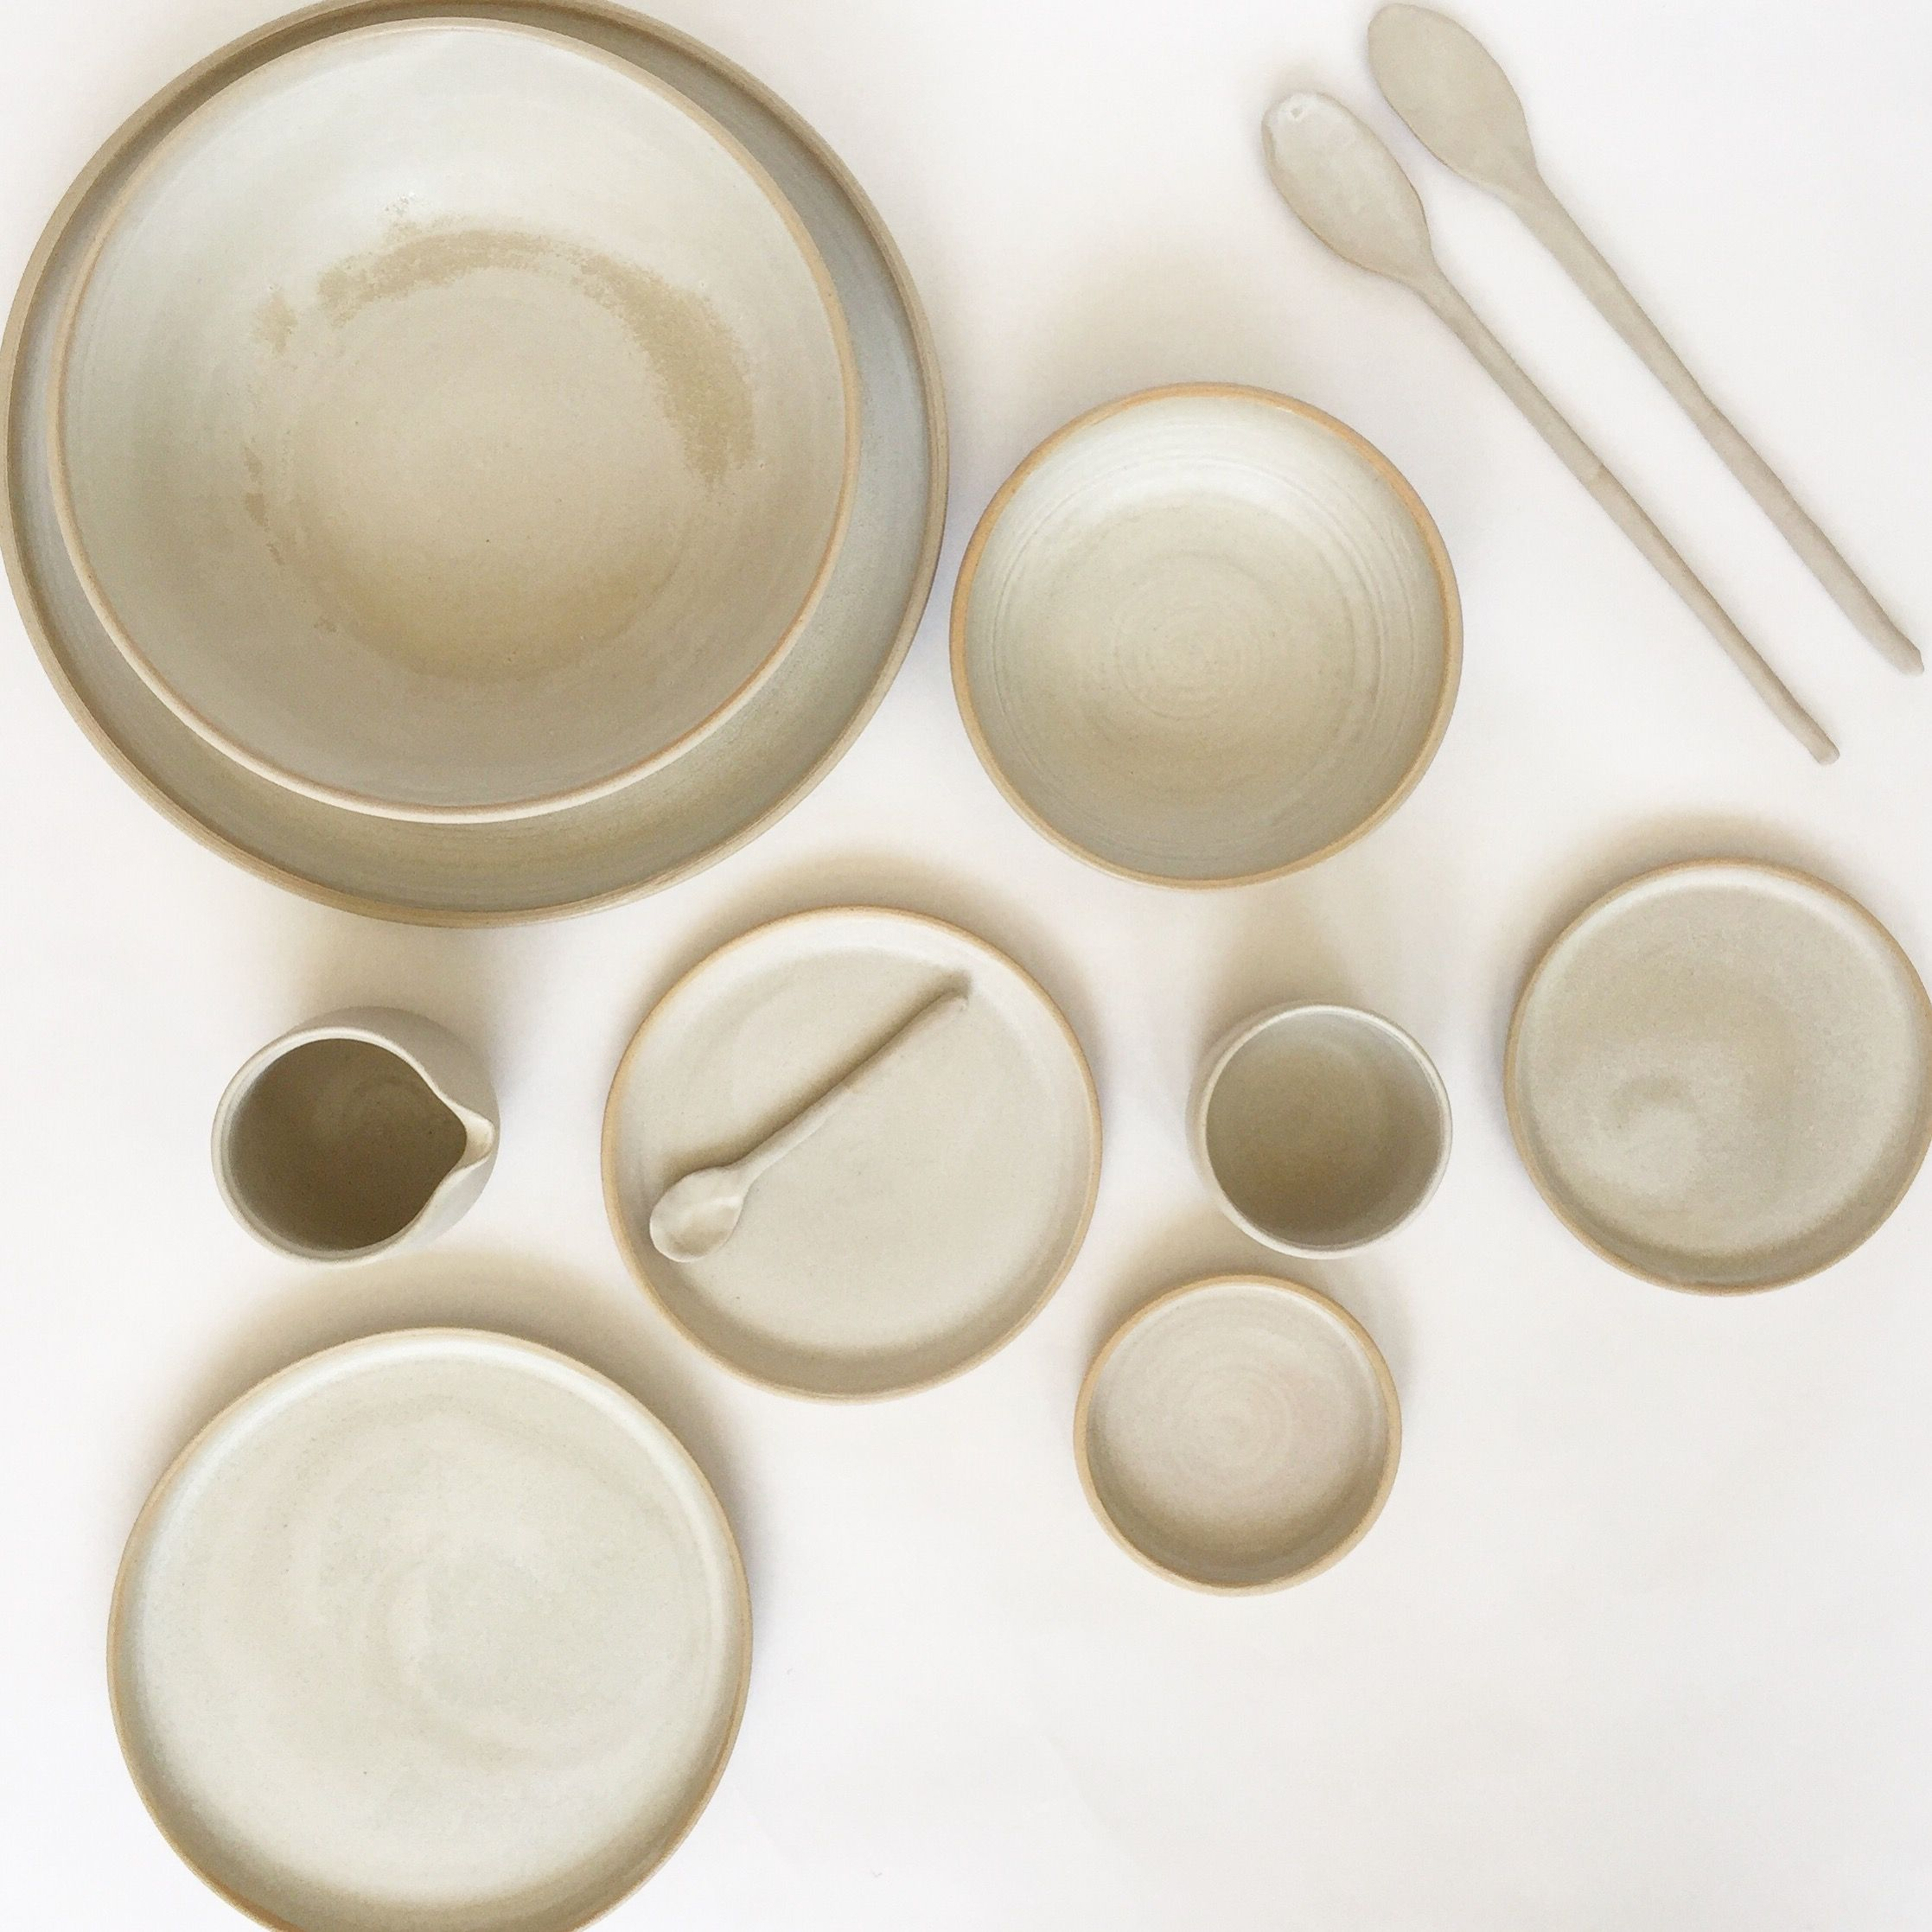 Offwhite Ceramic Dish Set With Bowls Plates And Spoons This Minimal Collection Of Stoneware Dishes Looks St Ceramic Dish Set Stoneware Dishes Ceramic Dishes